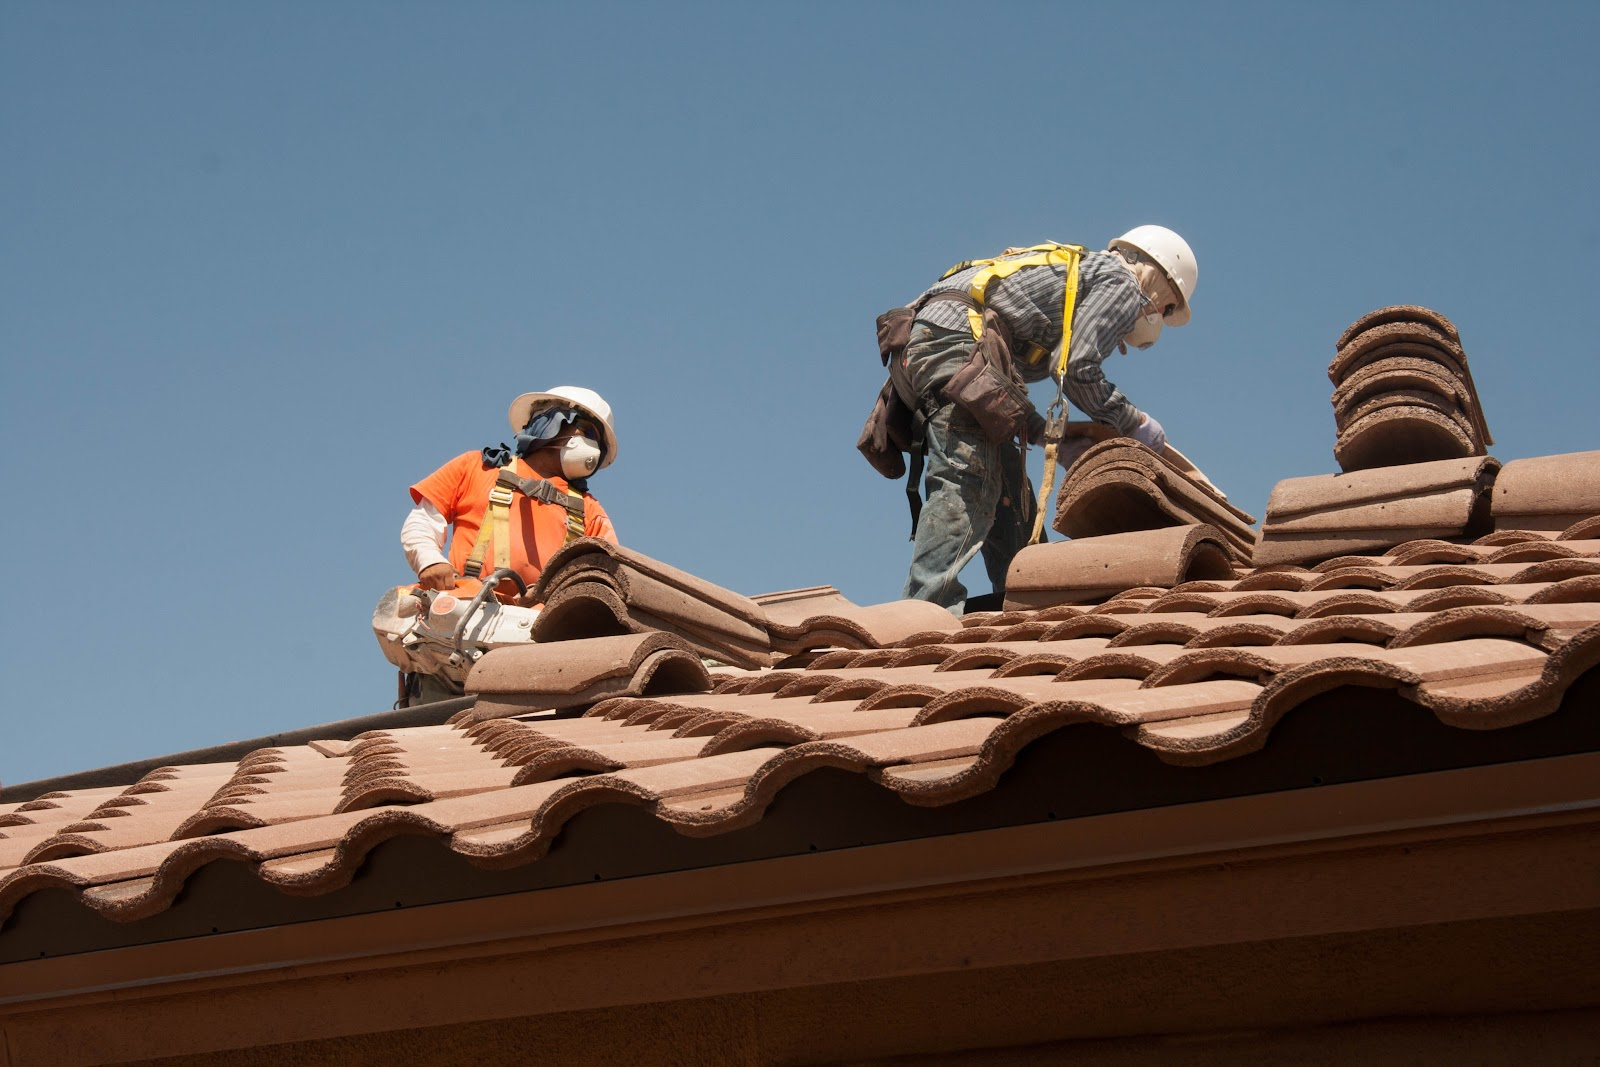 Roofing_workers_fall_prevention_(9253637735).jpg